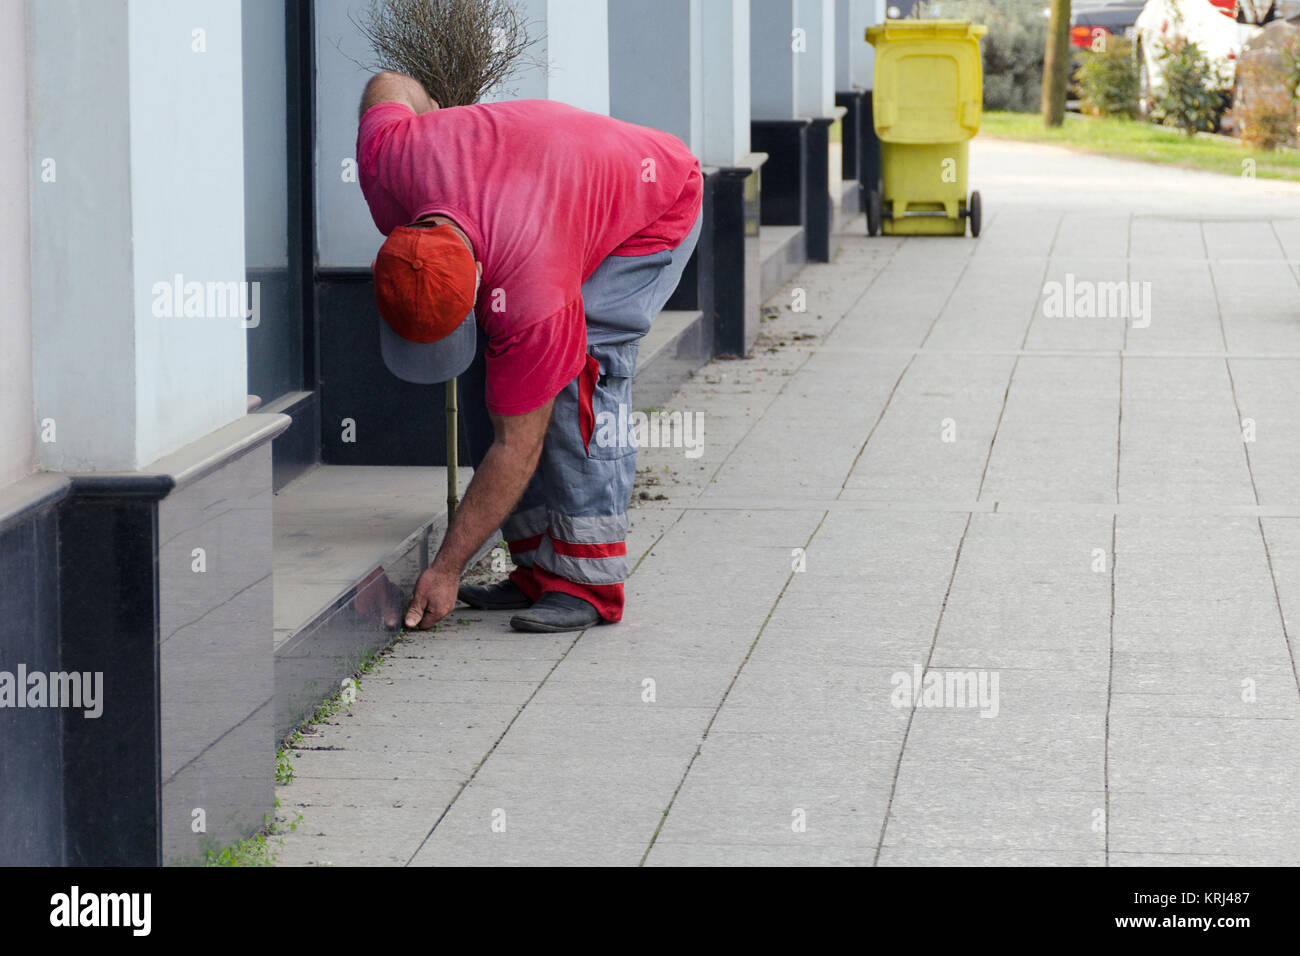 Cleaning of a city street - the worker the yard keeper in a uniform collects garbage by hands near a building, behind - Stock Image